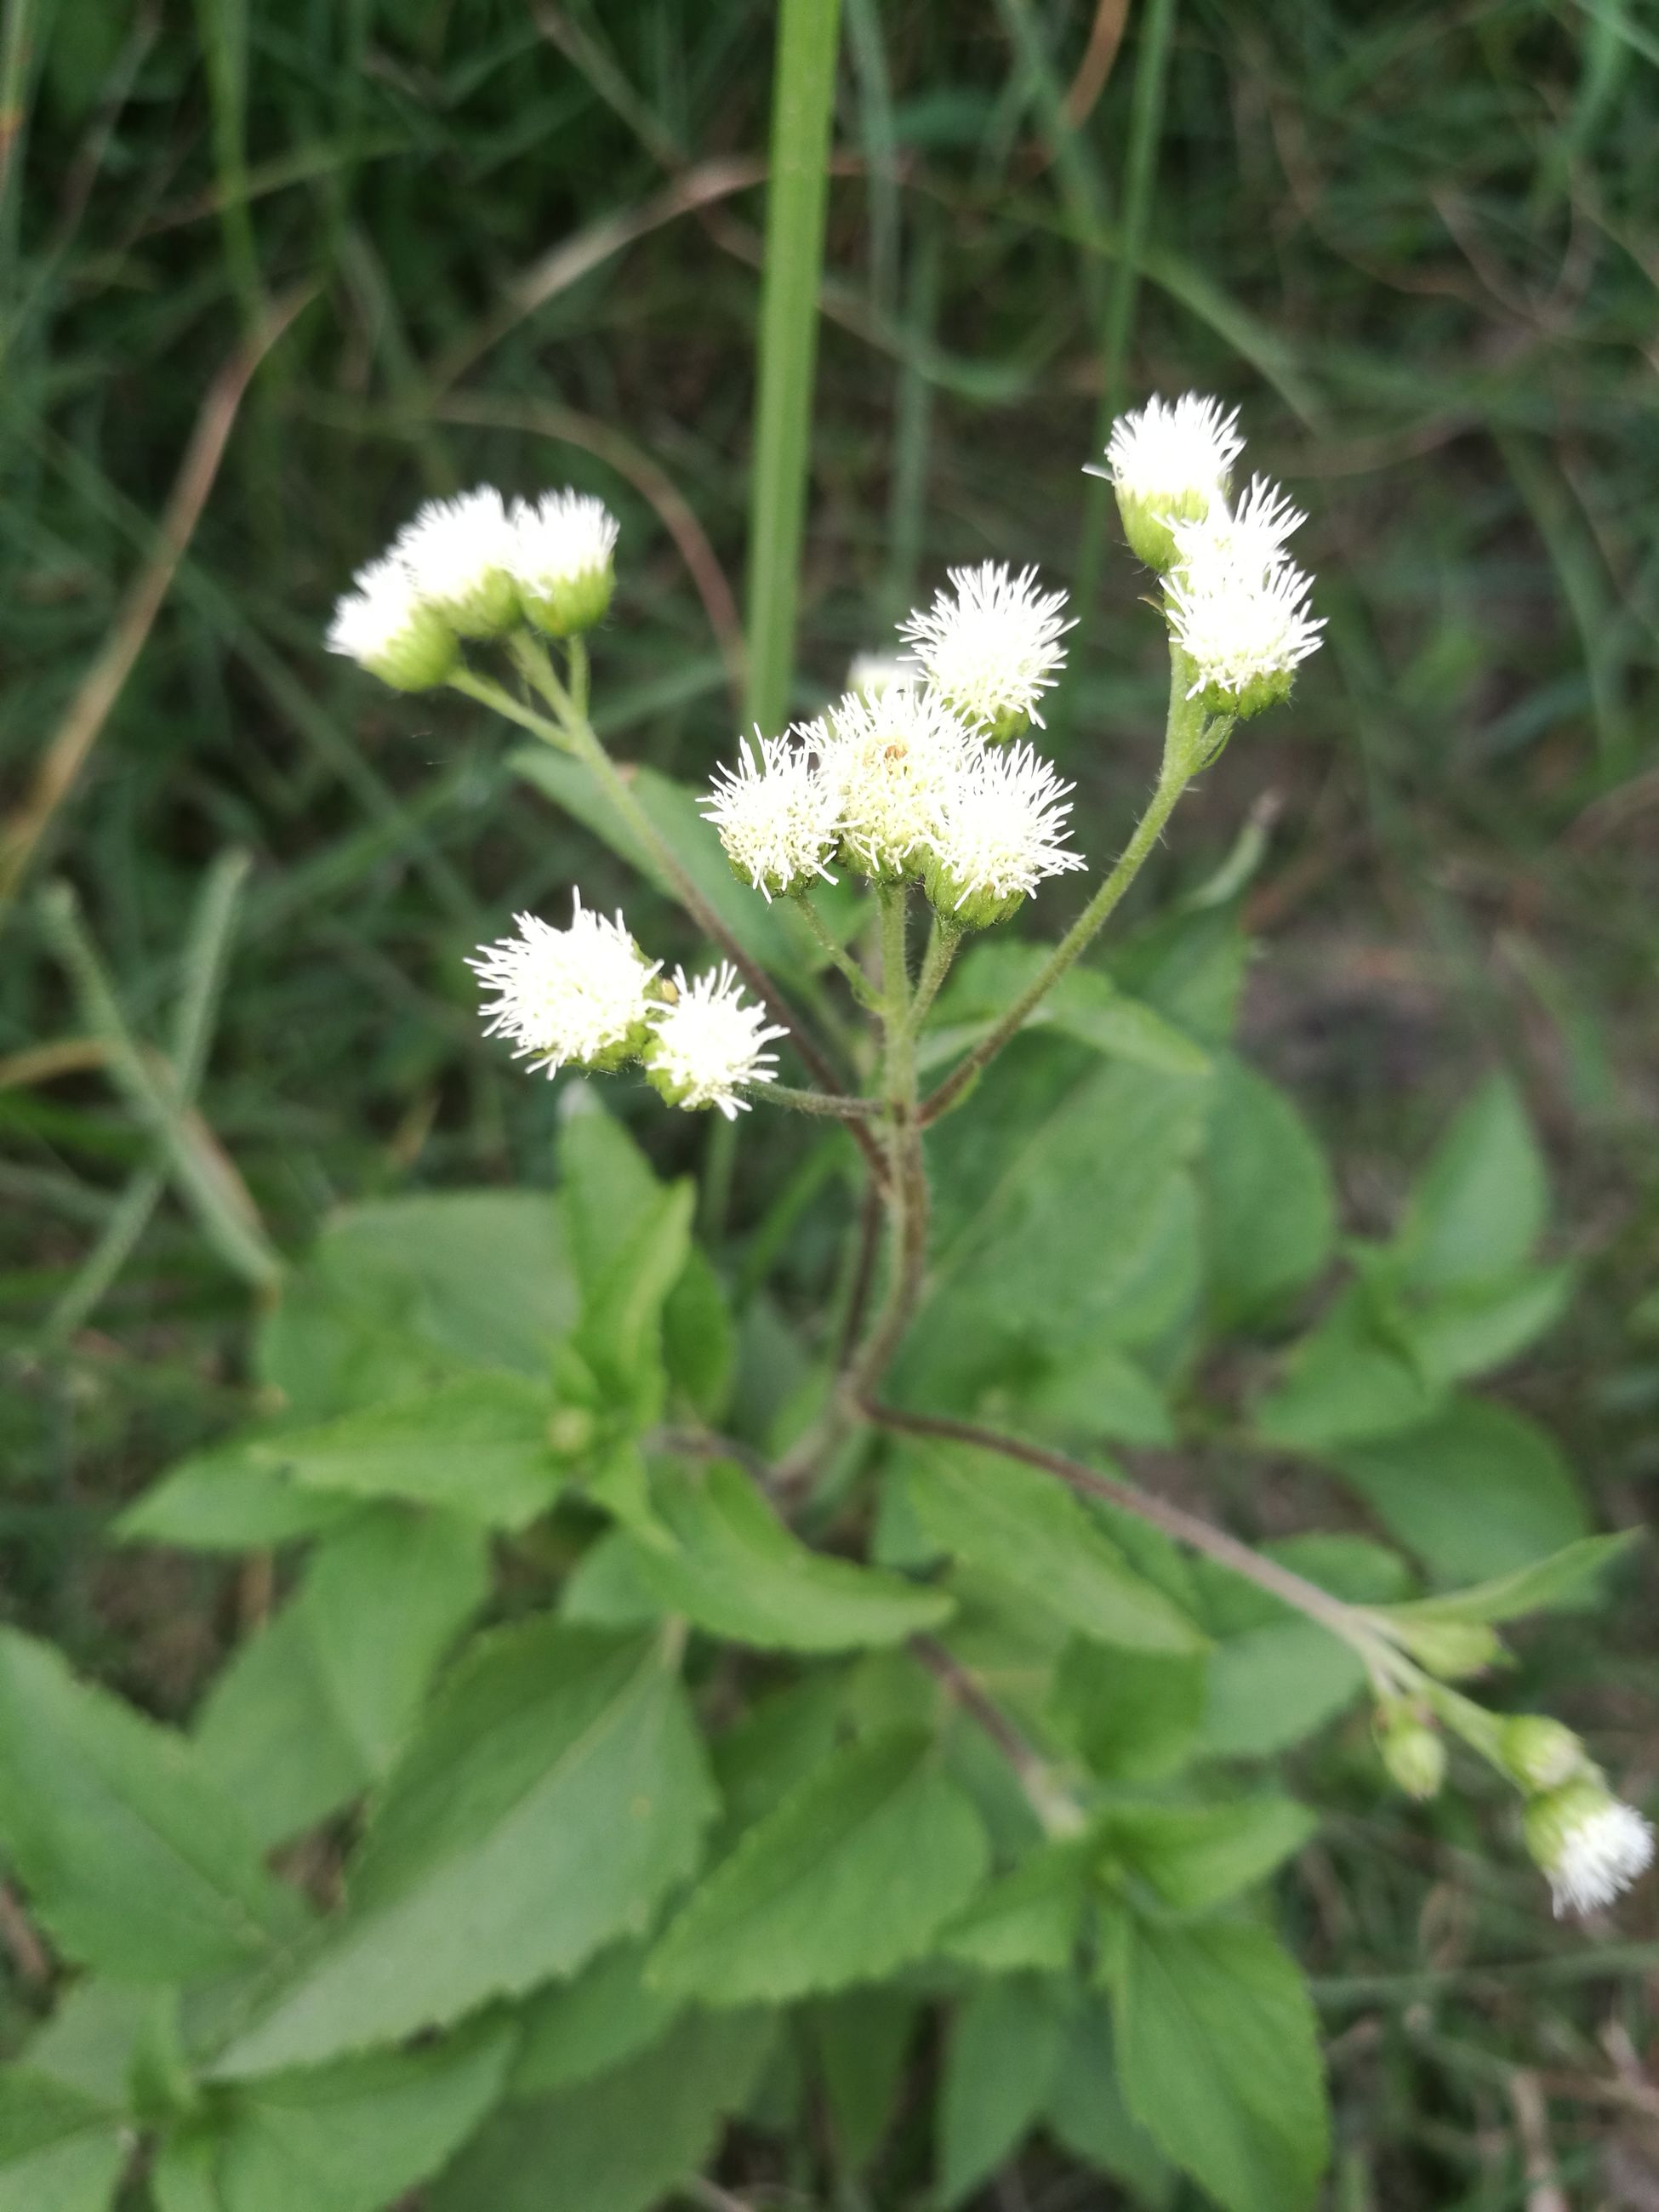 flower, nature, growth, white color, plant, fragility, beauty in nature, freshness, flower head, blooming, no people, outdoors, day, close-up